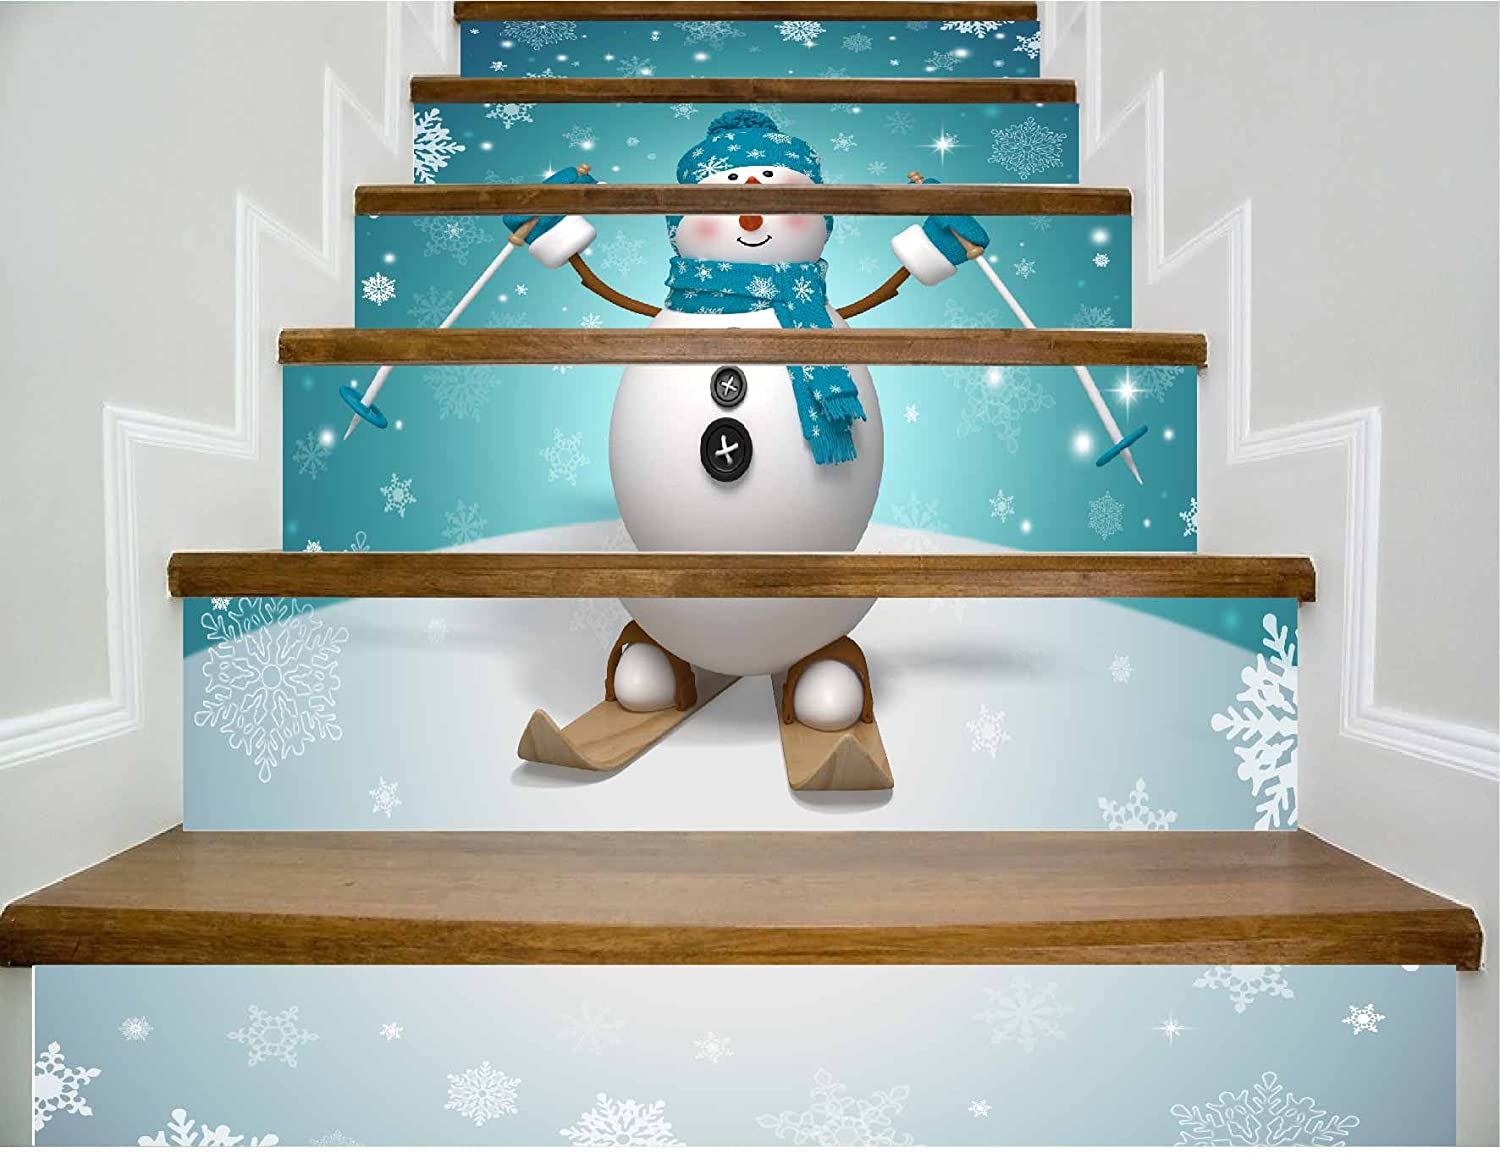 Stairs selfAdhesive Wallpaper Christmas Home Snowman Decoration 3D Removable Sticker Modern Wallpaper Fashion Buy Three get one Free